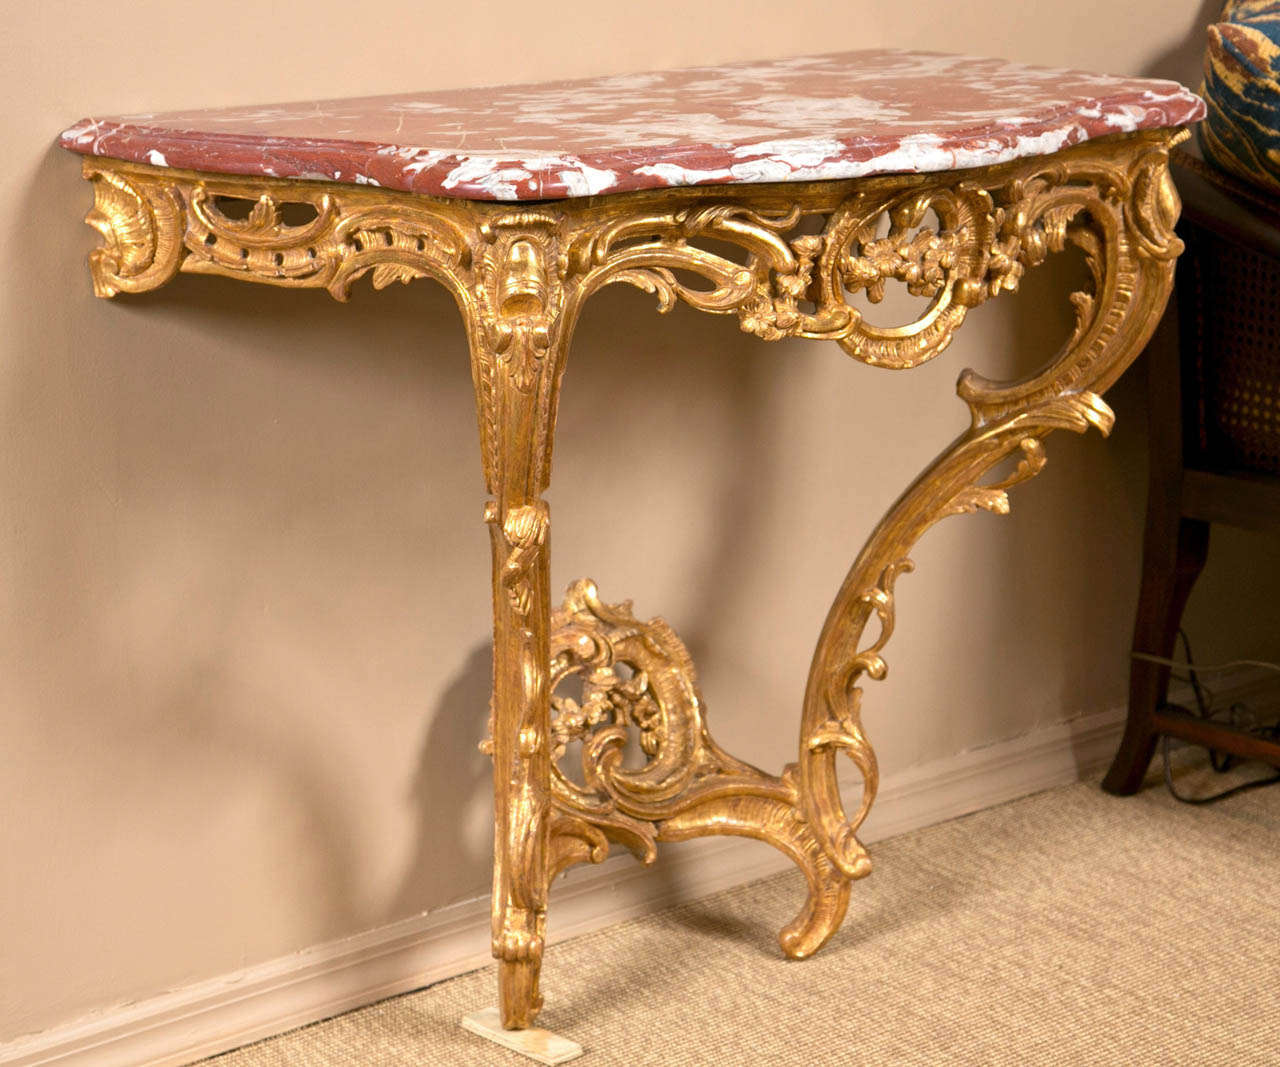 Id F_1023042 on Rococo Louis Xv Style Painted Console At 1stdibs